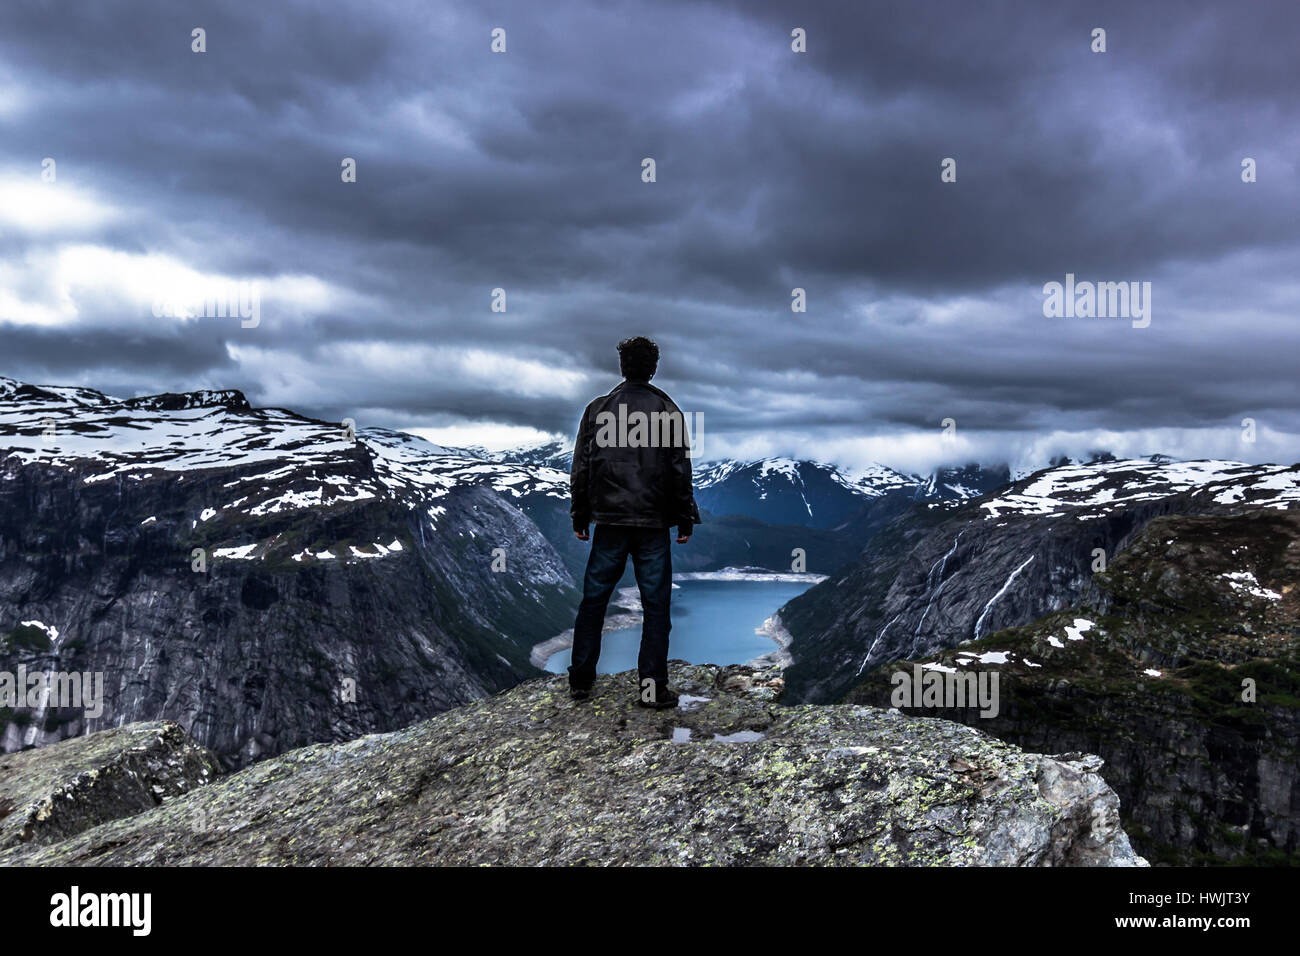 July 22, 2015: Traveller at the edge of Trolltunga, Norway - Stock Image